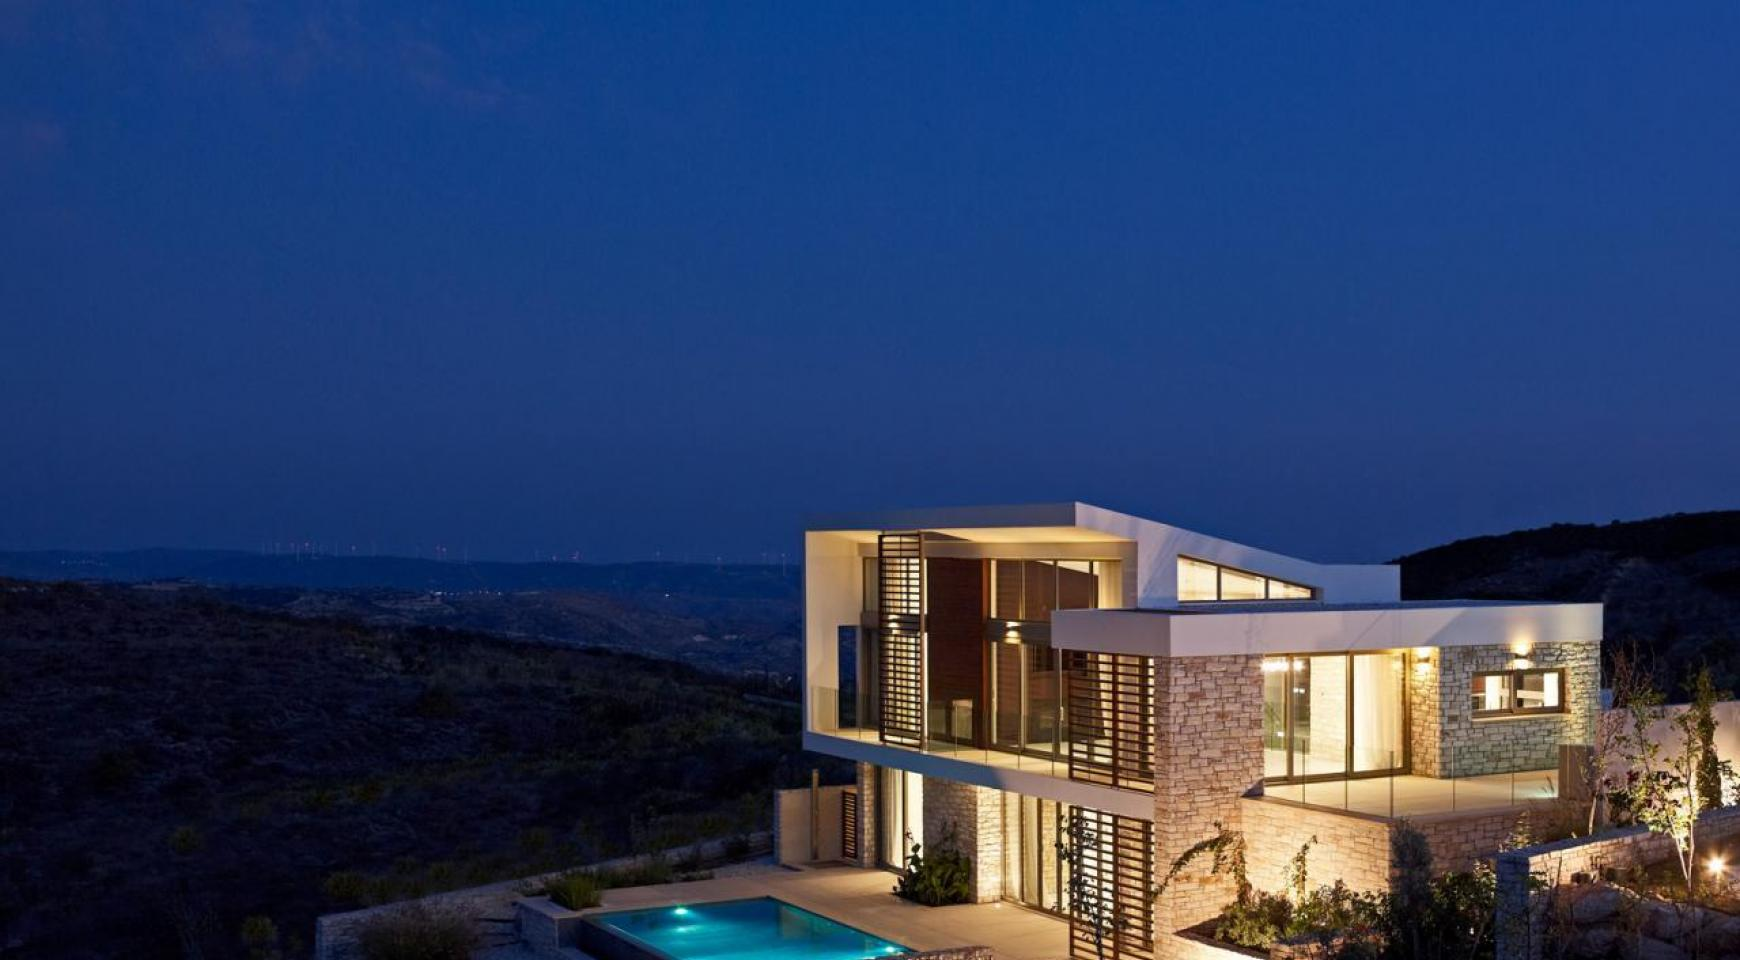 Golf Property - Exclusive 3 Bedroom Villa with Stunning Views - 6